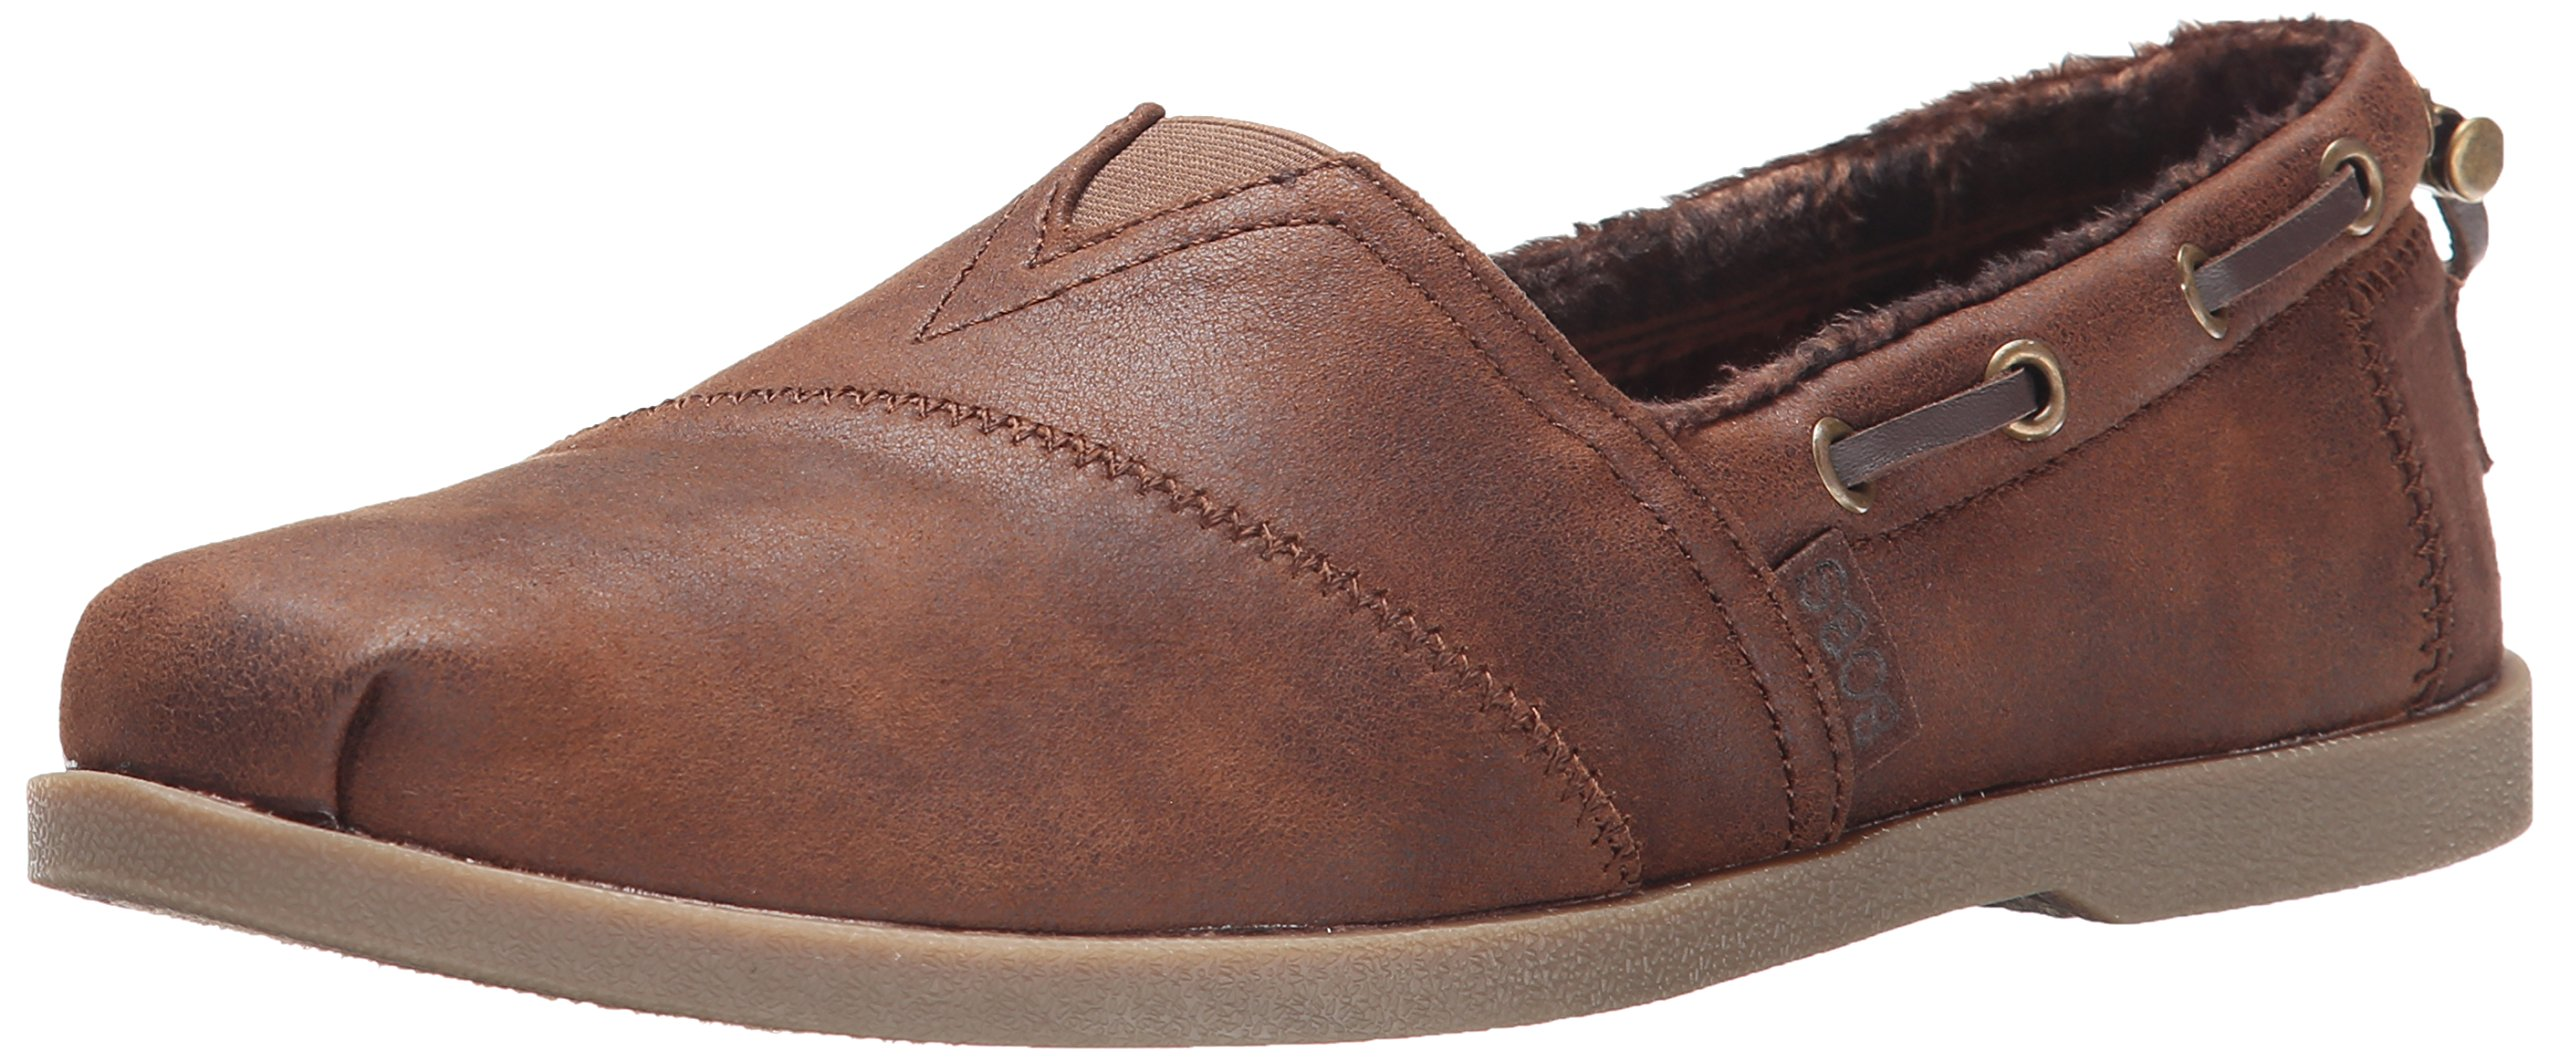 Skechers BOBS from Women's Chill Luxe Shoe, Brown, 7 M US